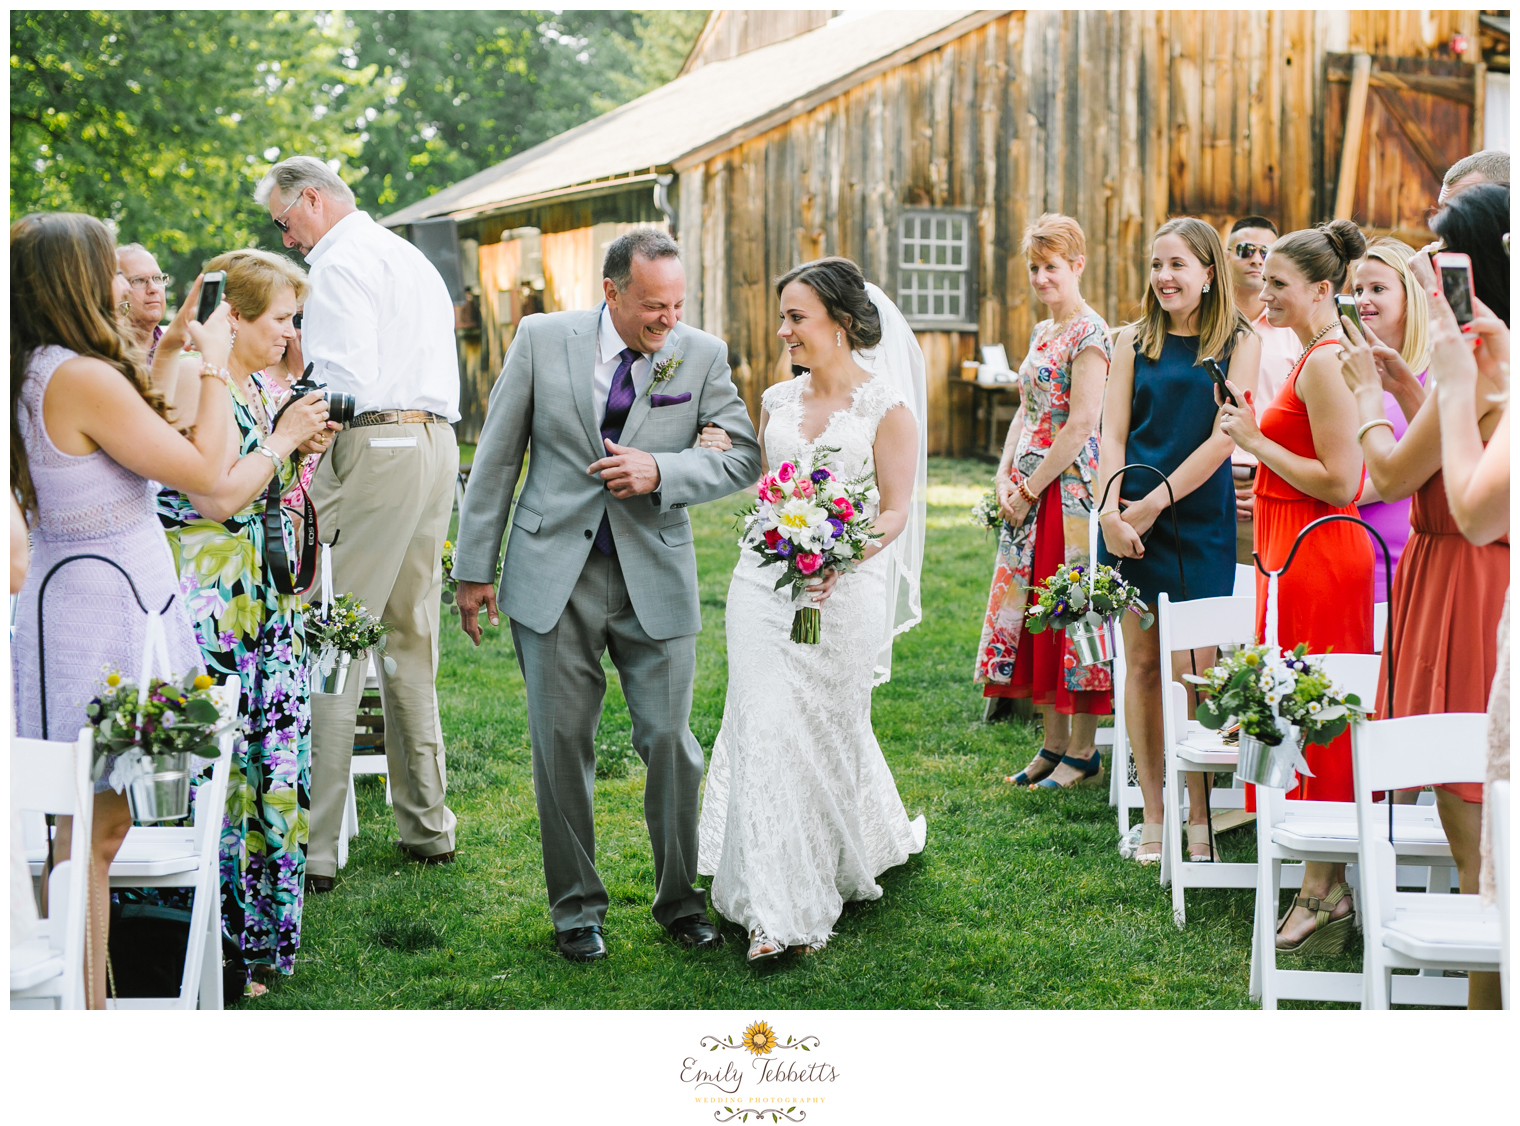 Emily Tebbetts Photography - webb barn wedding wethersfield ct connecticut rustic chic wedding first look fathers day emotional -4.jpg